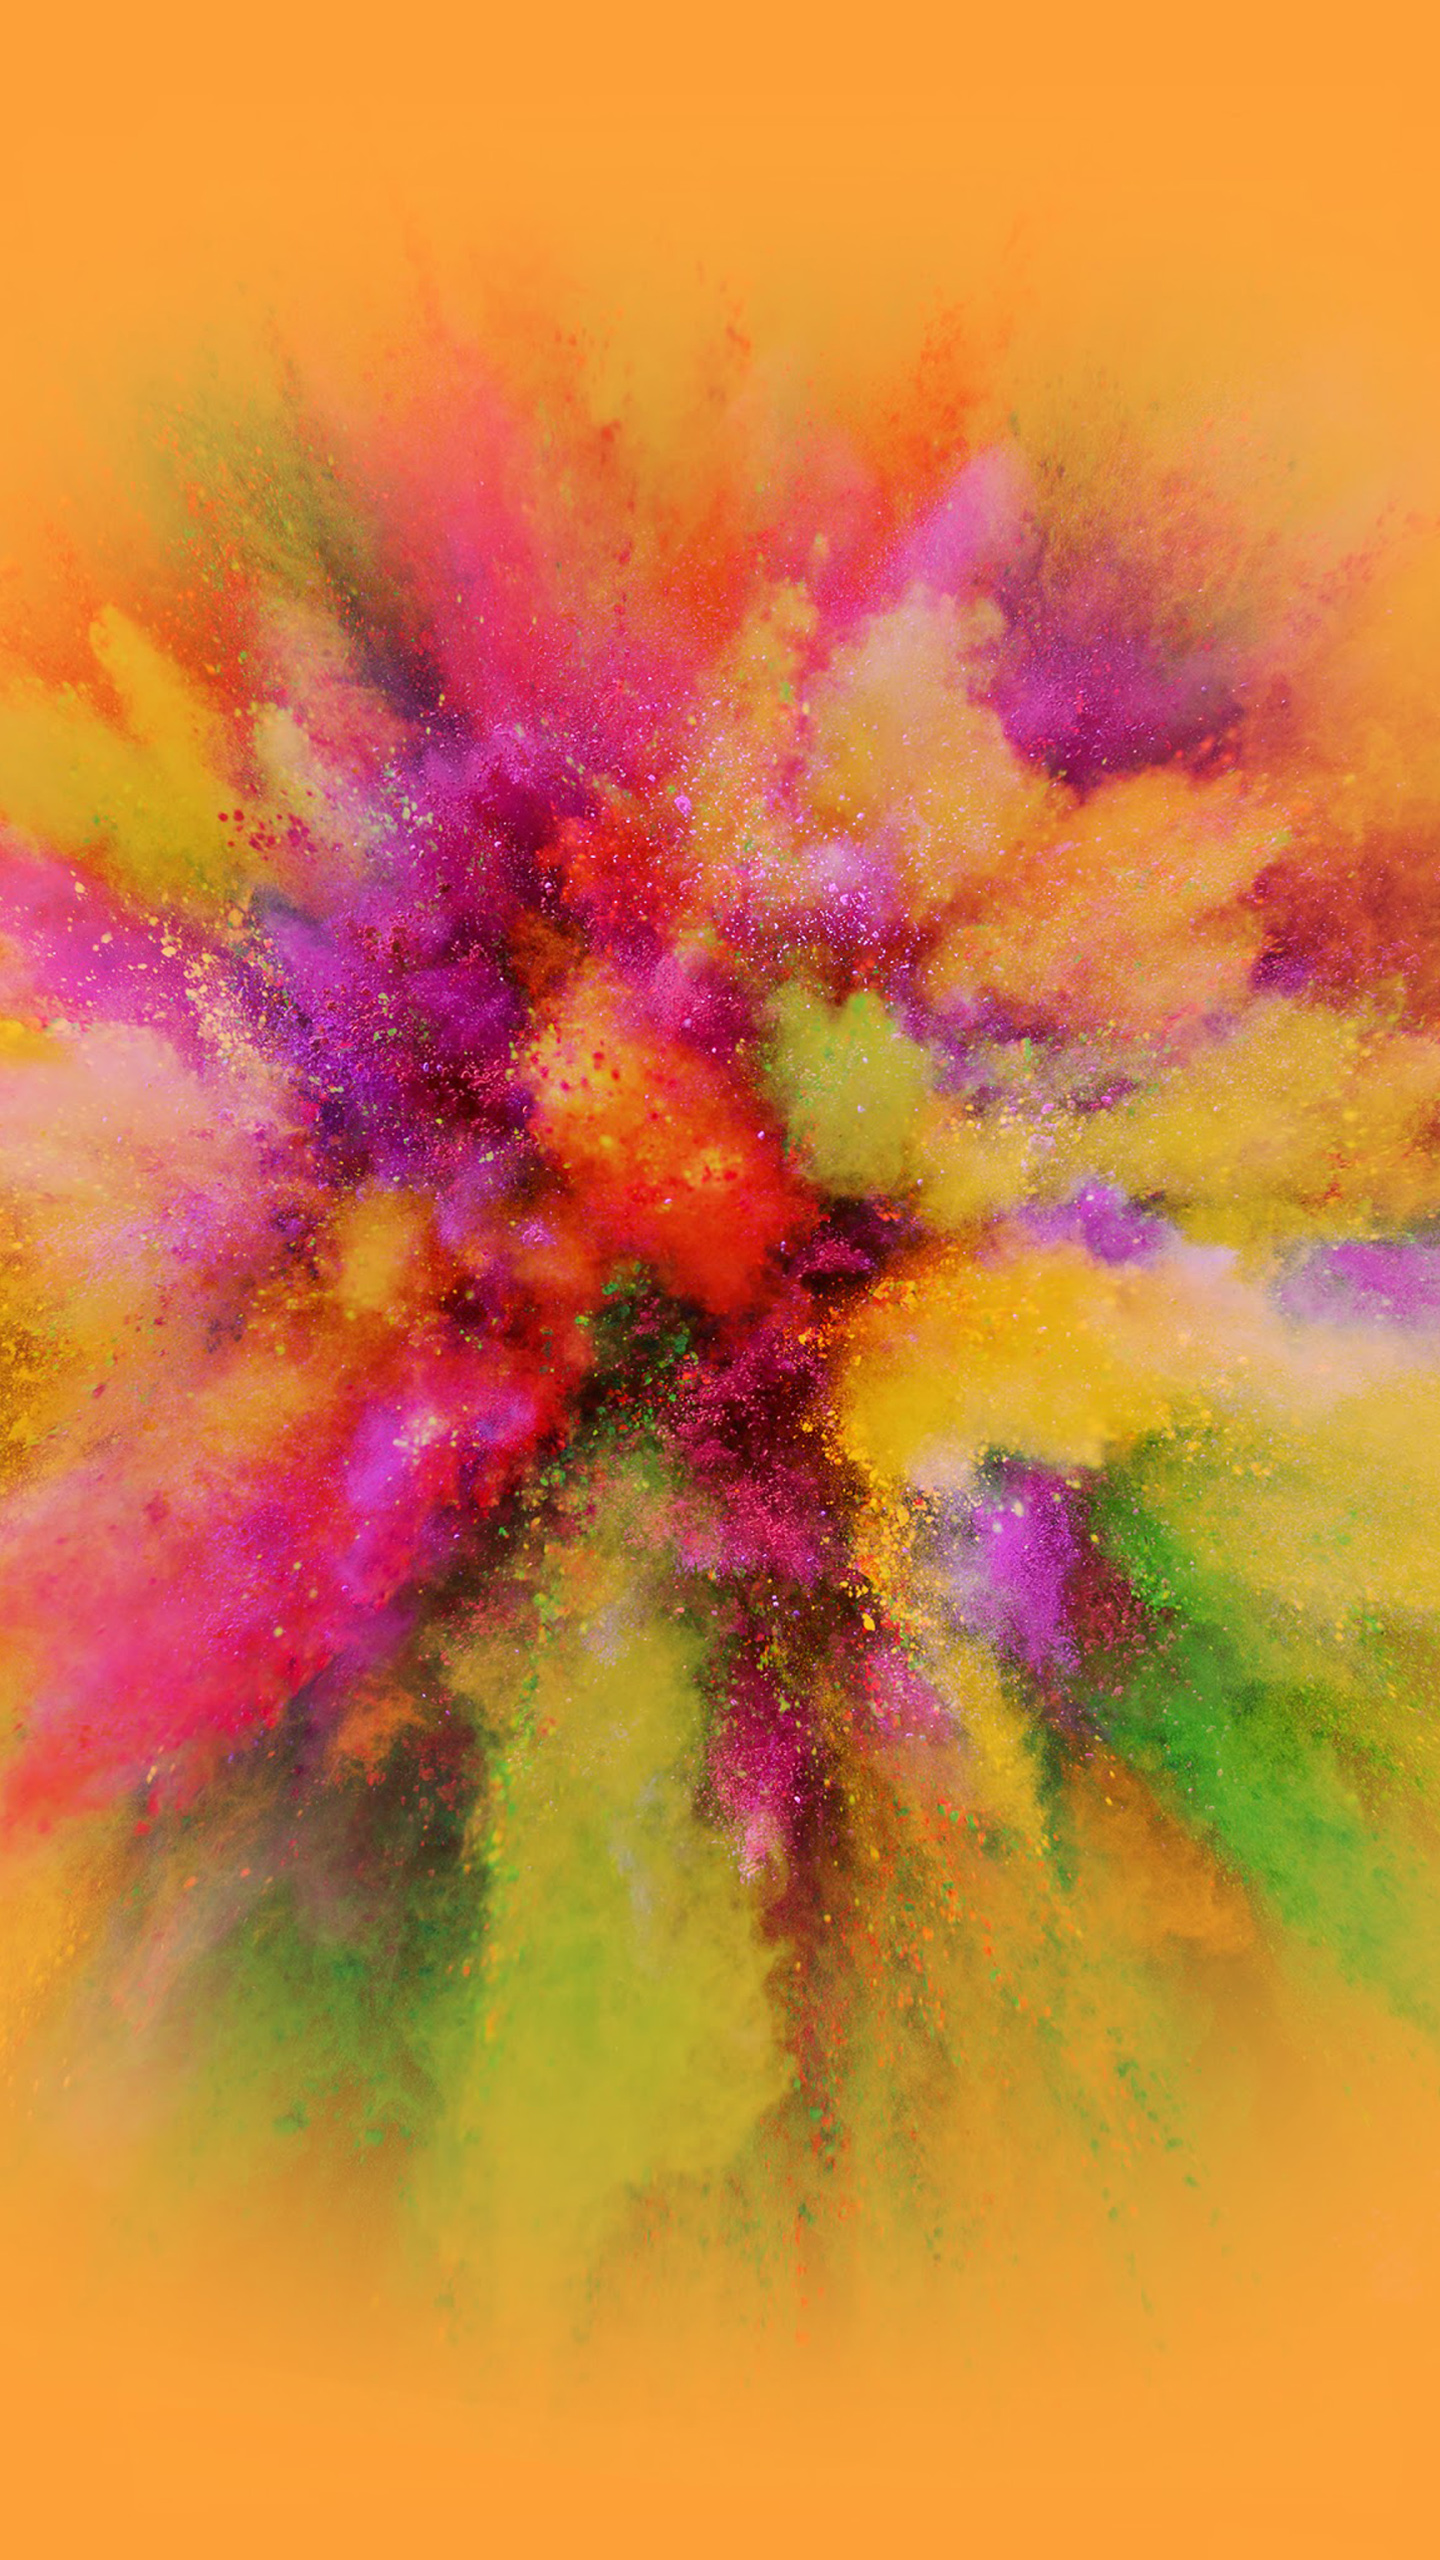 LG V20 Wallpaper With Indian Holi Photo